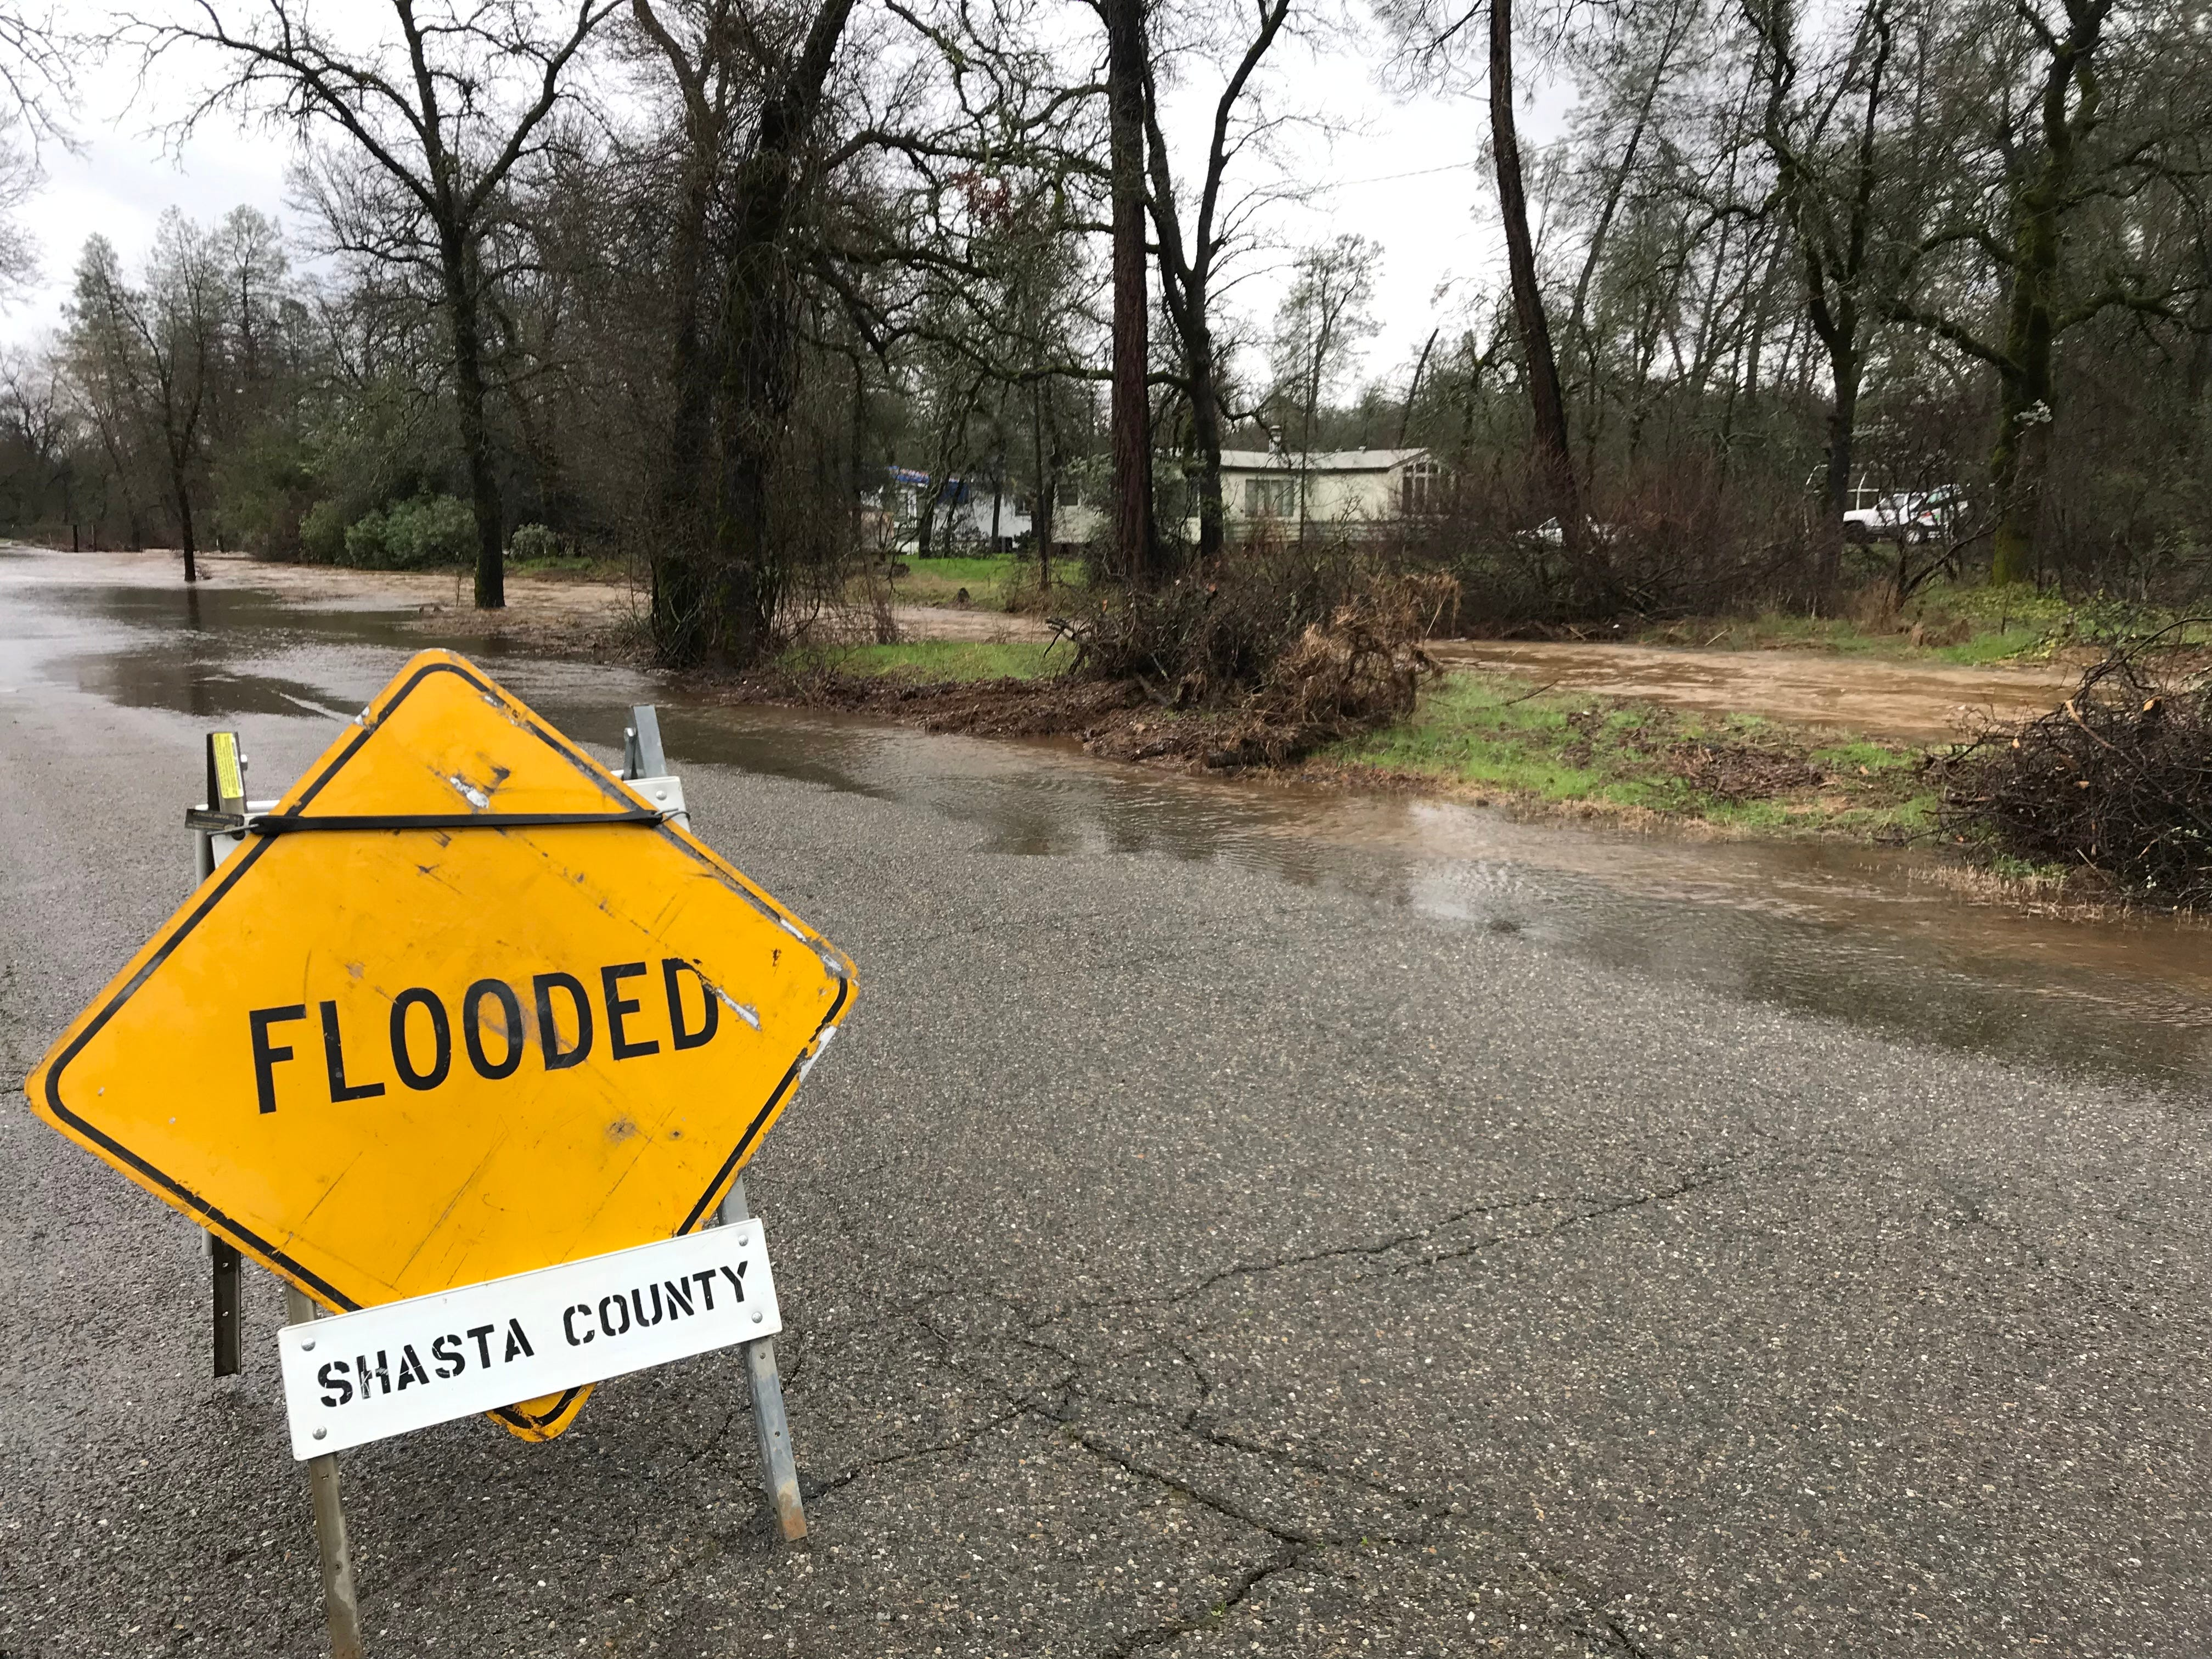 Shasta County Public Works officials closed down Old Oasis Road near Randolph Road after it was flooded by nearby Newton Creek.